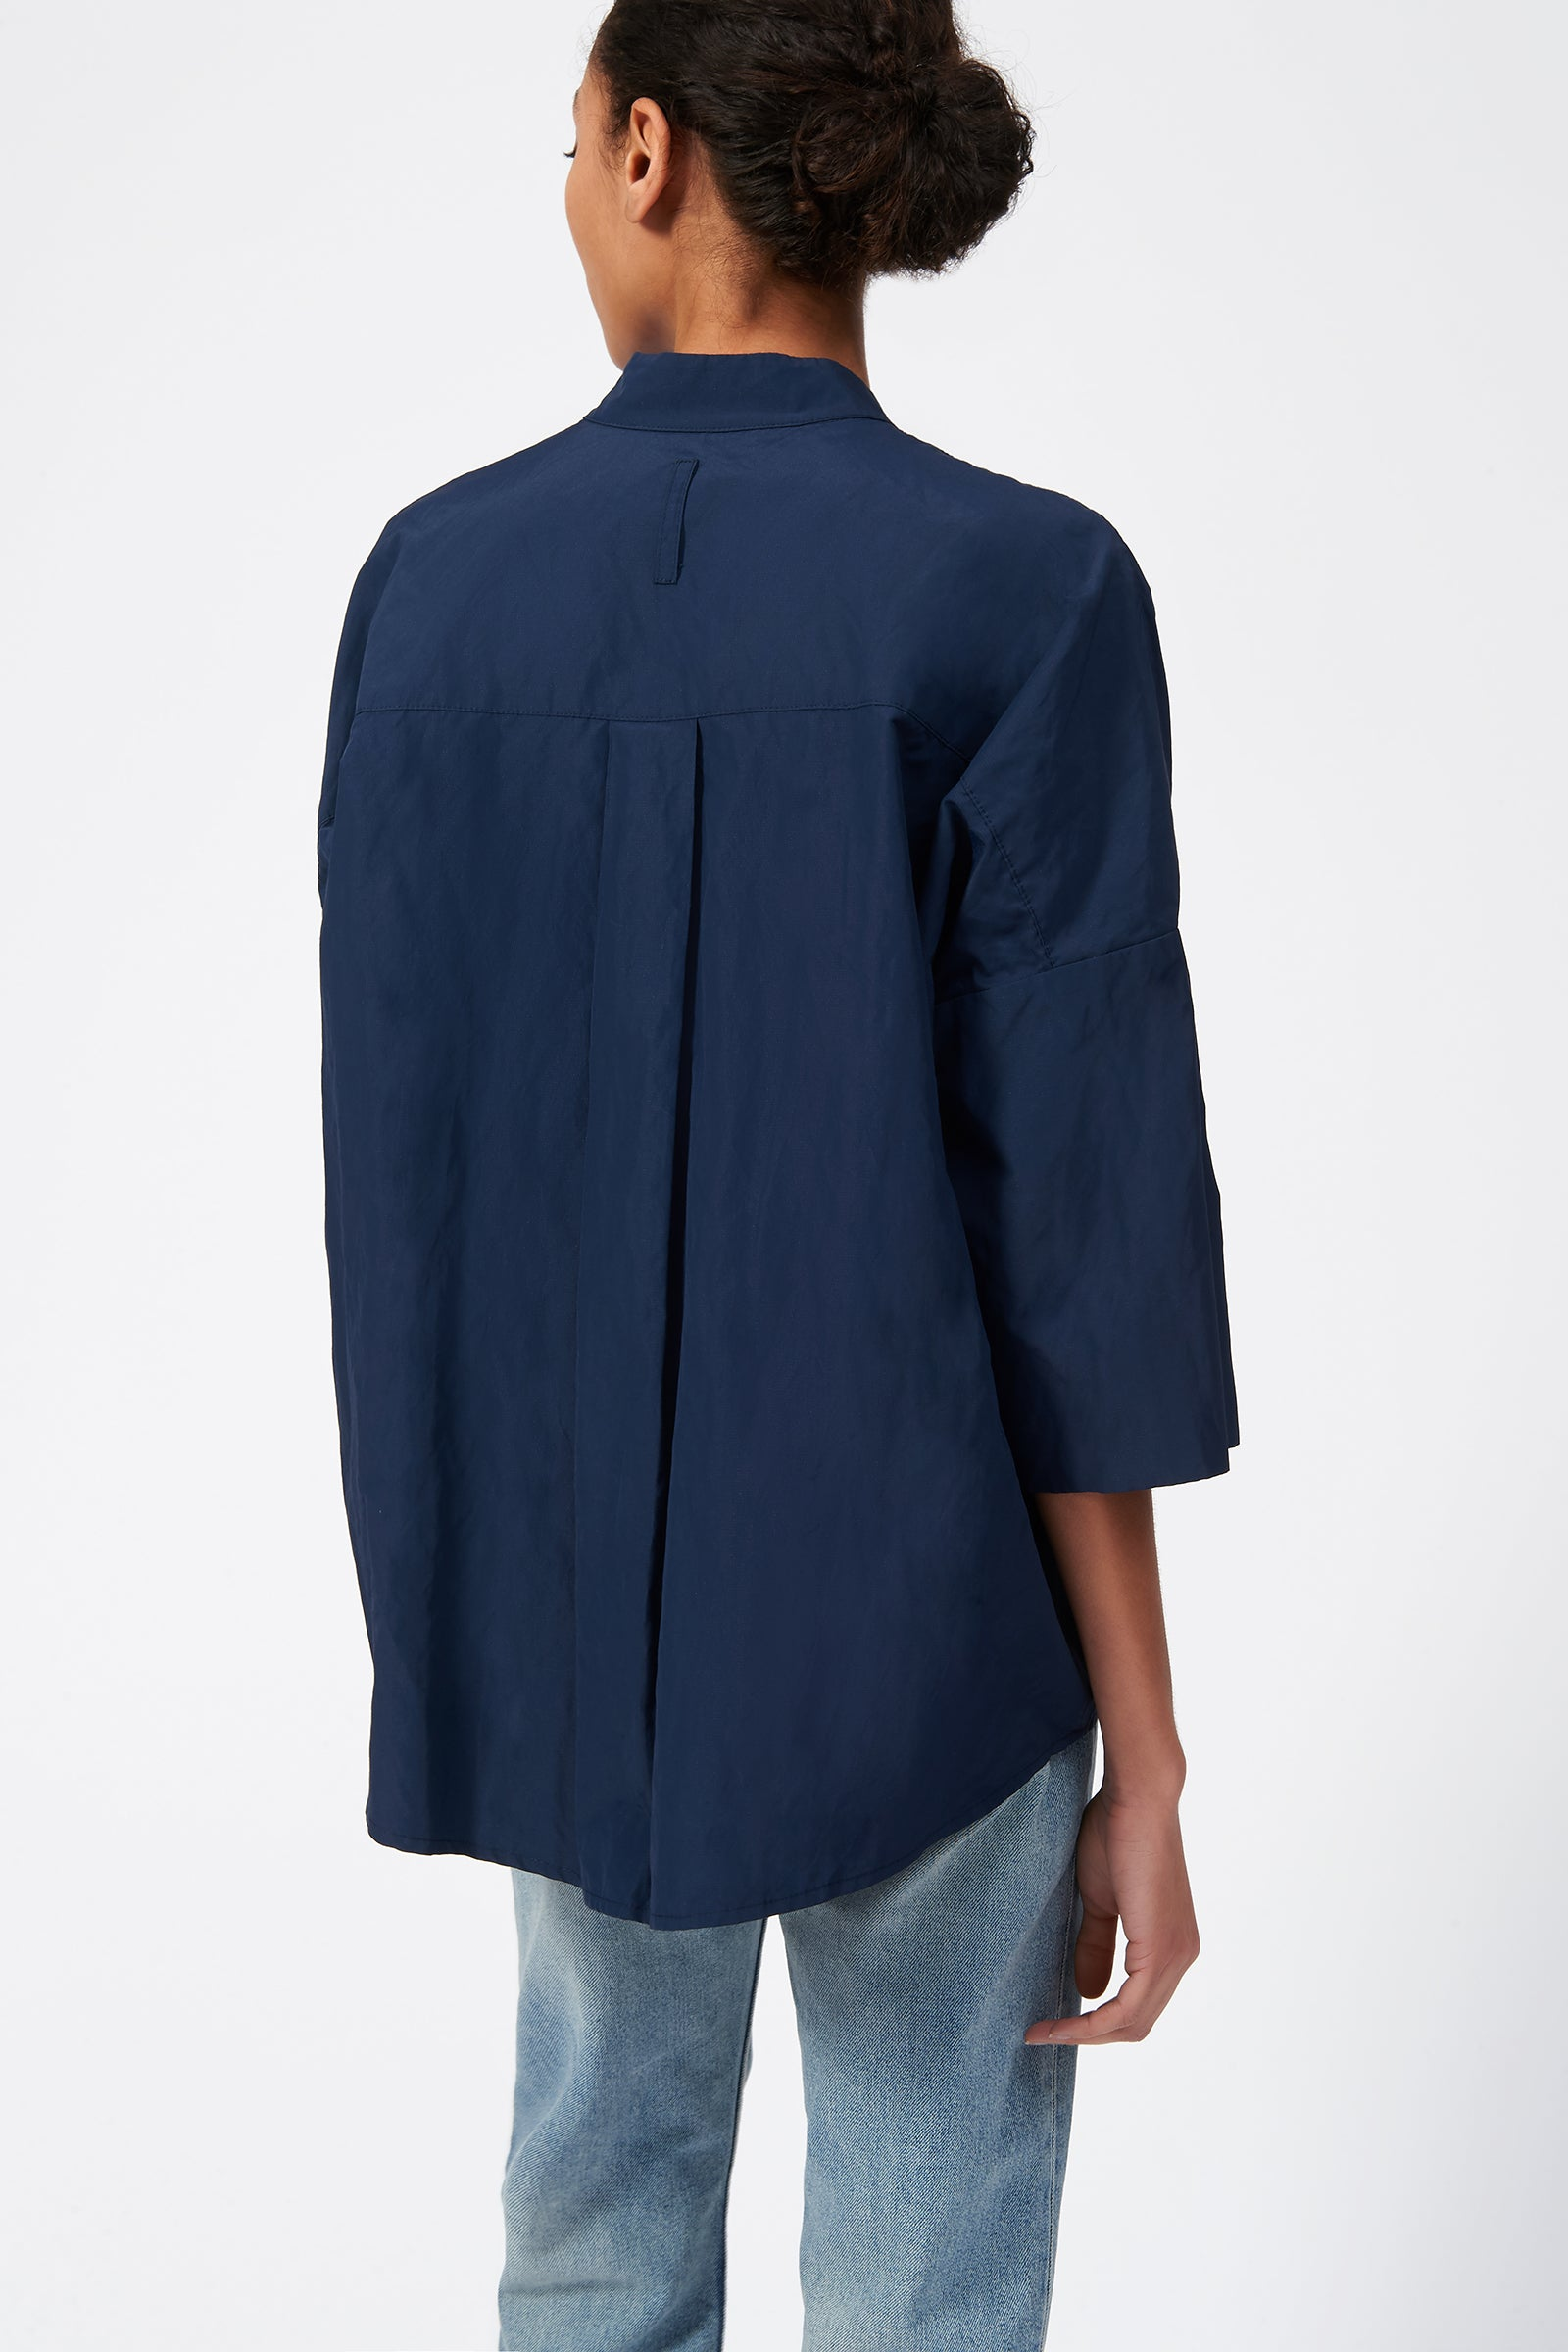 Kal Rieman Pleat Hem Kimono in Navy on Model Full Front View